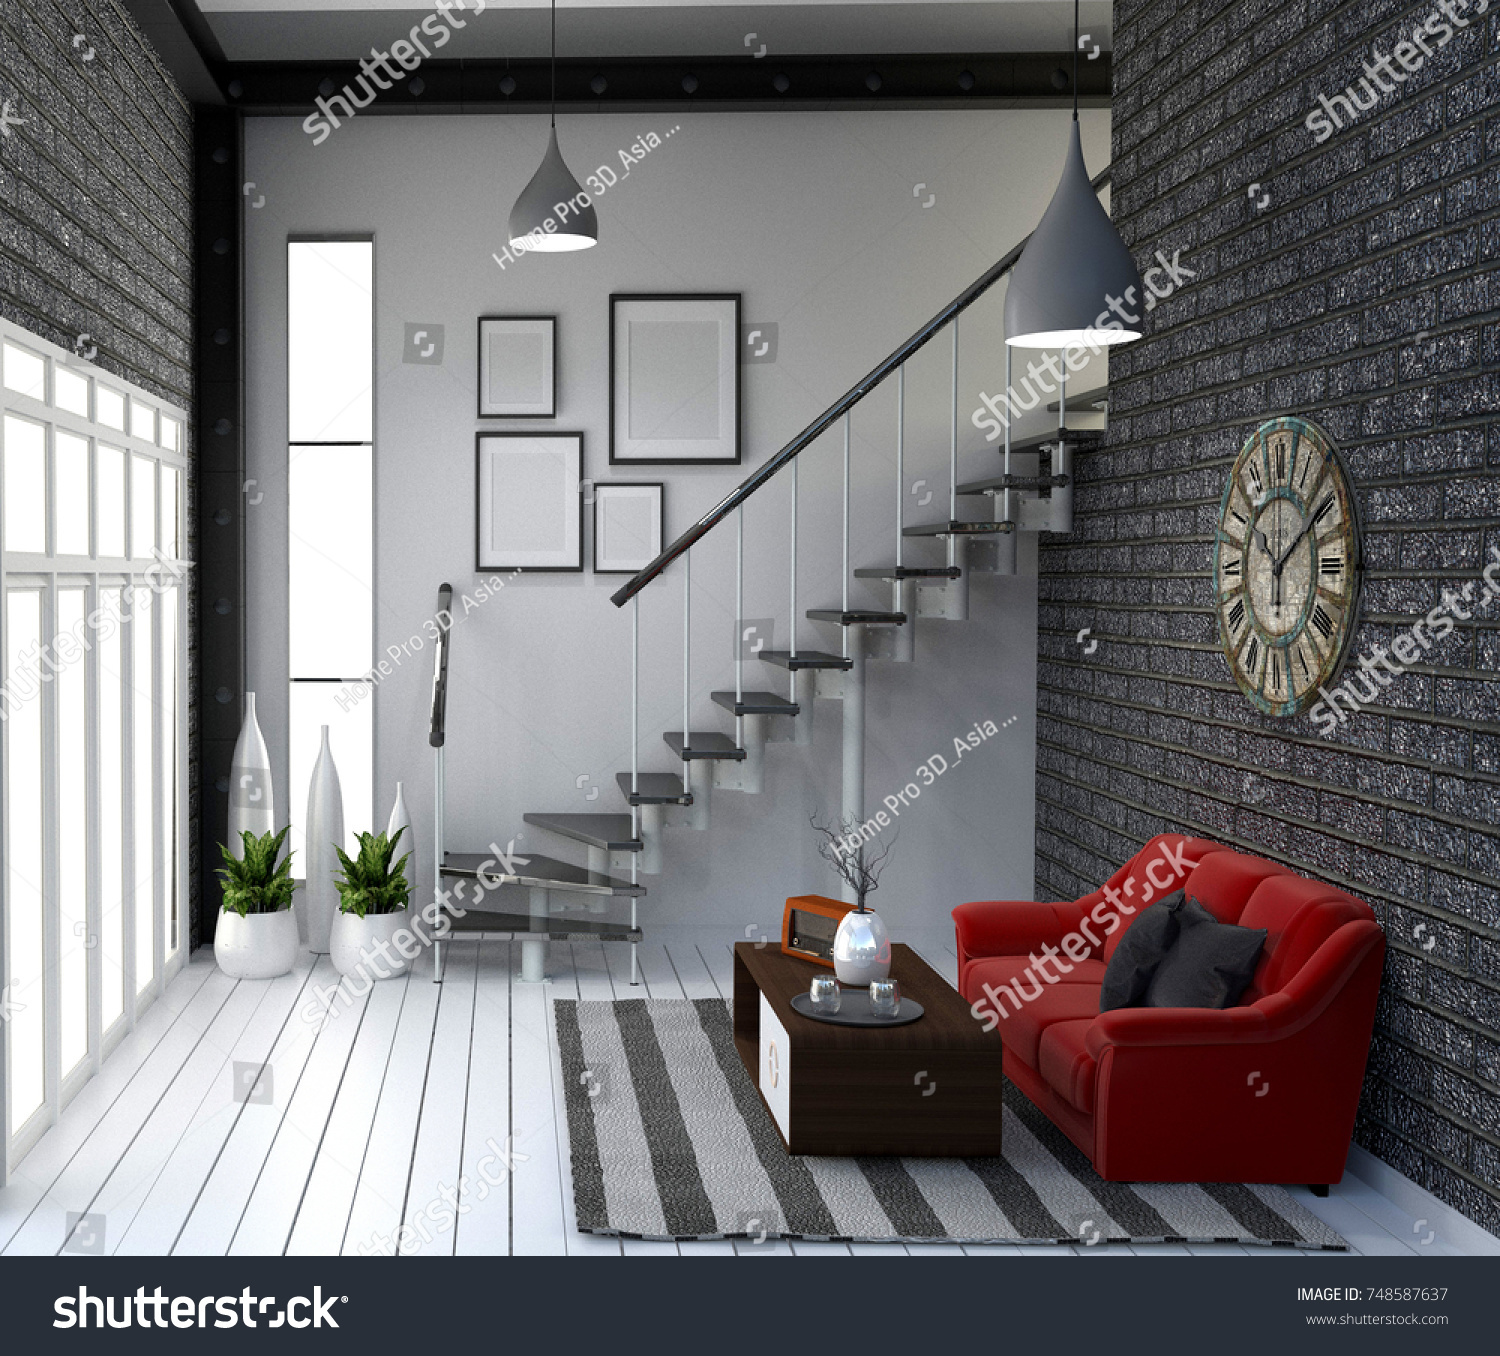 kelowna interior do hatch selling rendering renderings help bc you vision corporate design work modeling need our your office